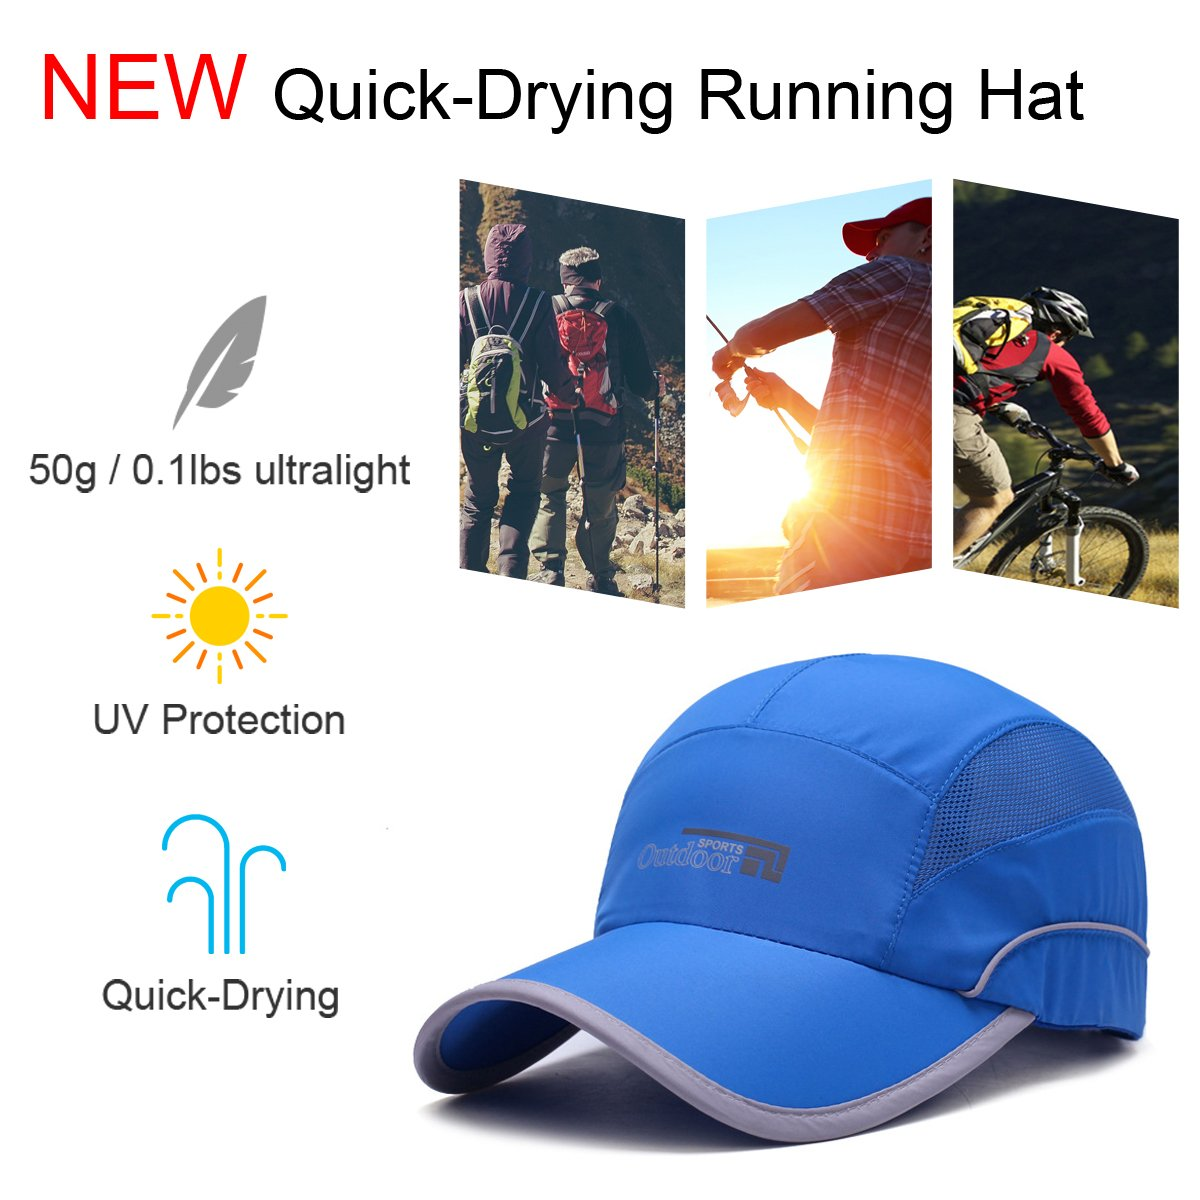 Gisdanchz Mesh Quick Dry Hat,Womens Running Hat,UV Protection Breathable Outdoor Hats for Men Baseball cap Running Fishing Hiking Sport Hat Under 10 Women UPF Quick-Drying Caps Blue